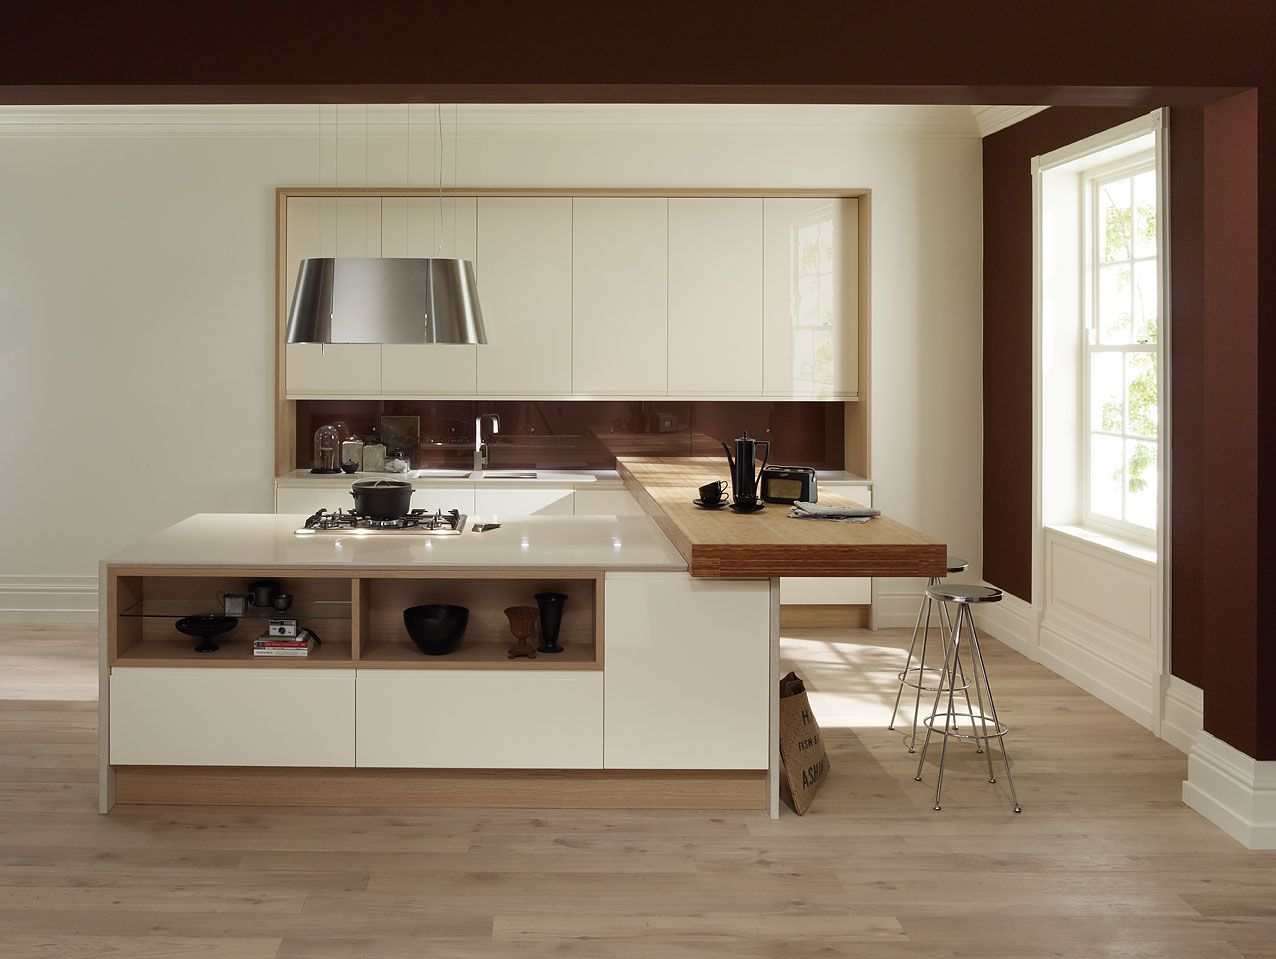 kitchen accessories design%0A Design  u     buy your Remo Alabaster kitchen online  All of our Remo Alabaster  kitchen units  doors  u     accessories are available to order today at trade  prices